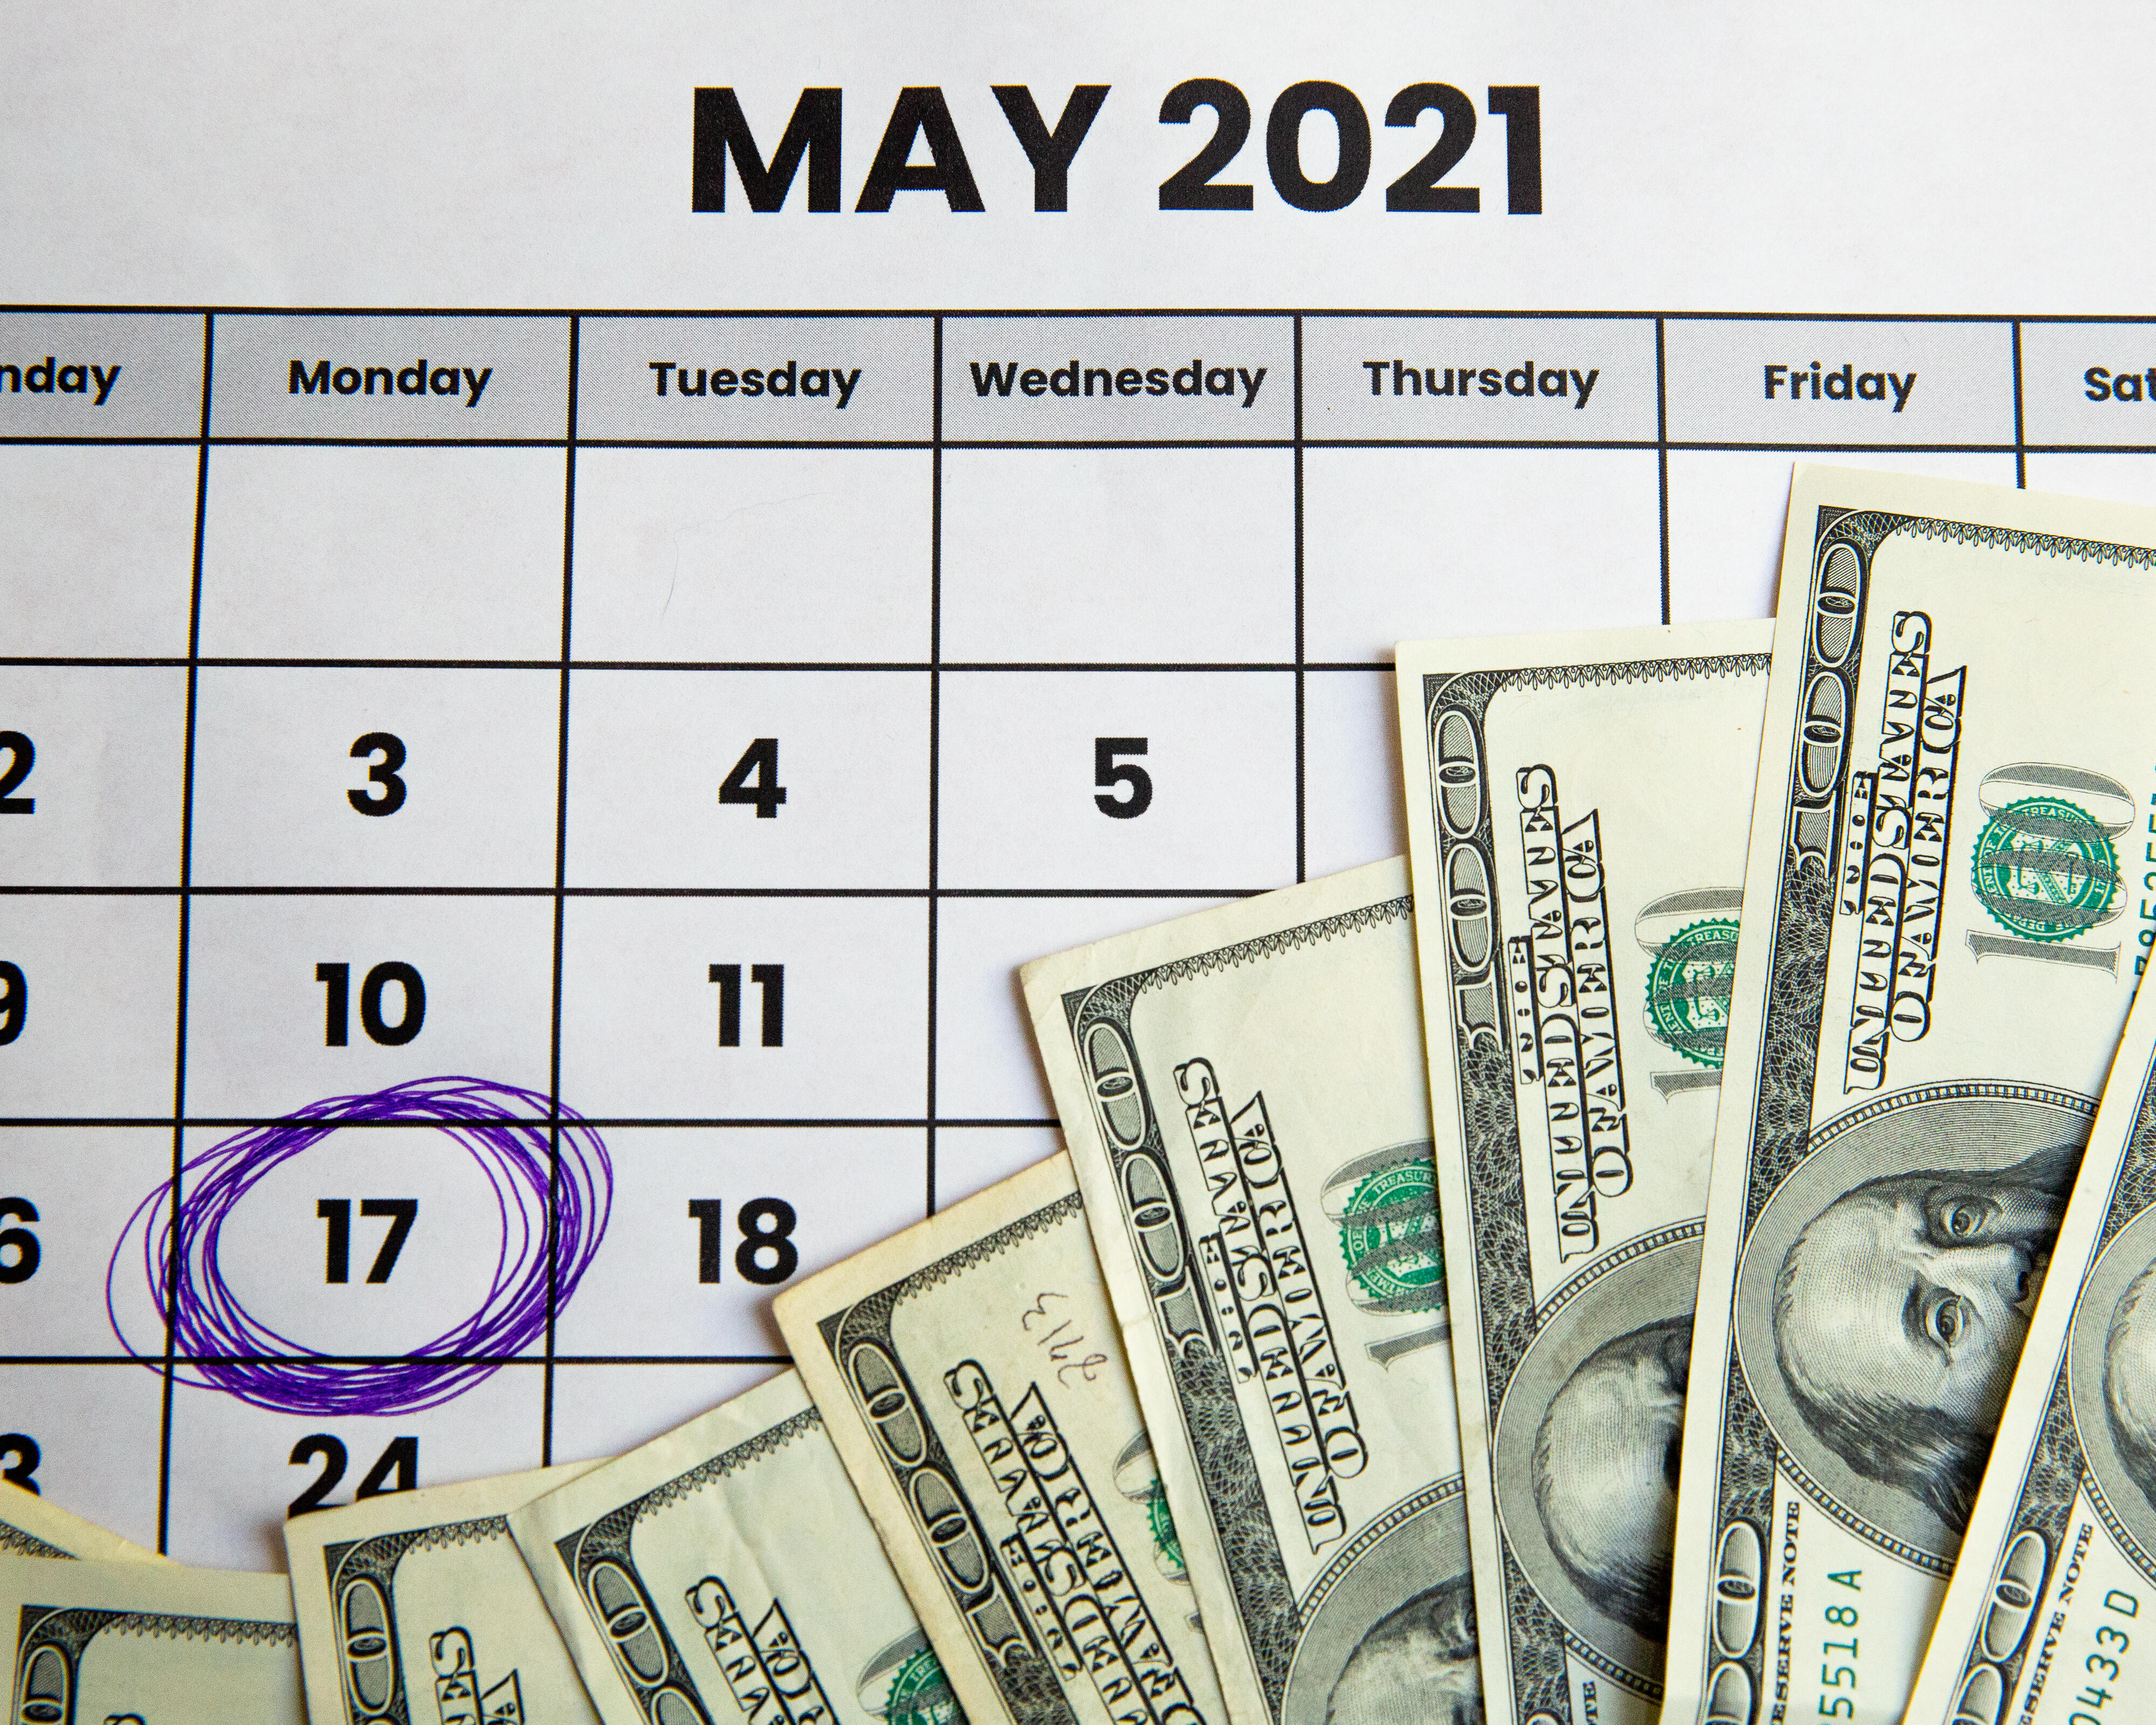 Tax Day is May 17th